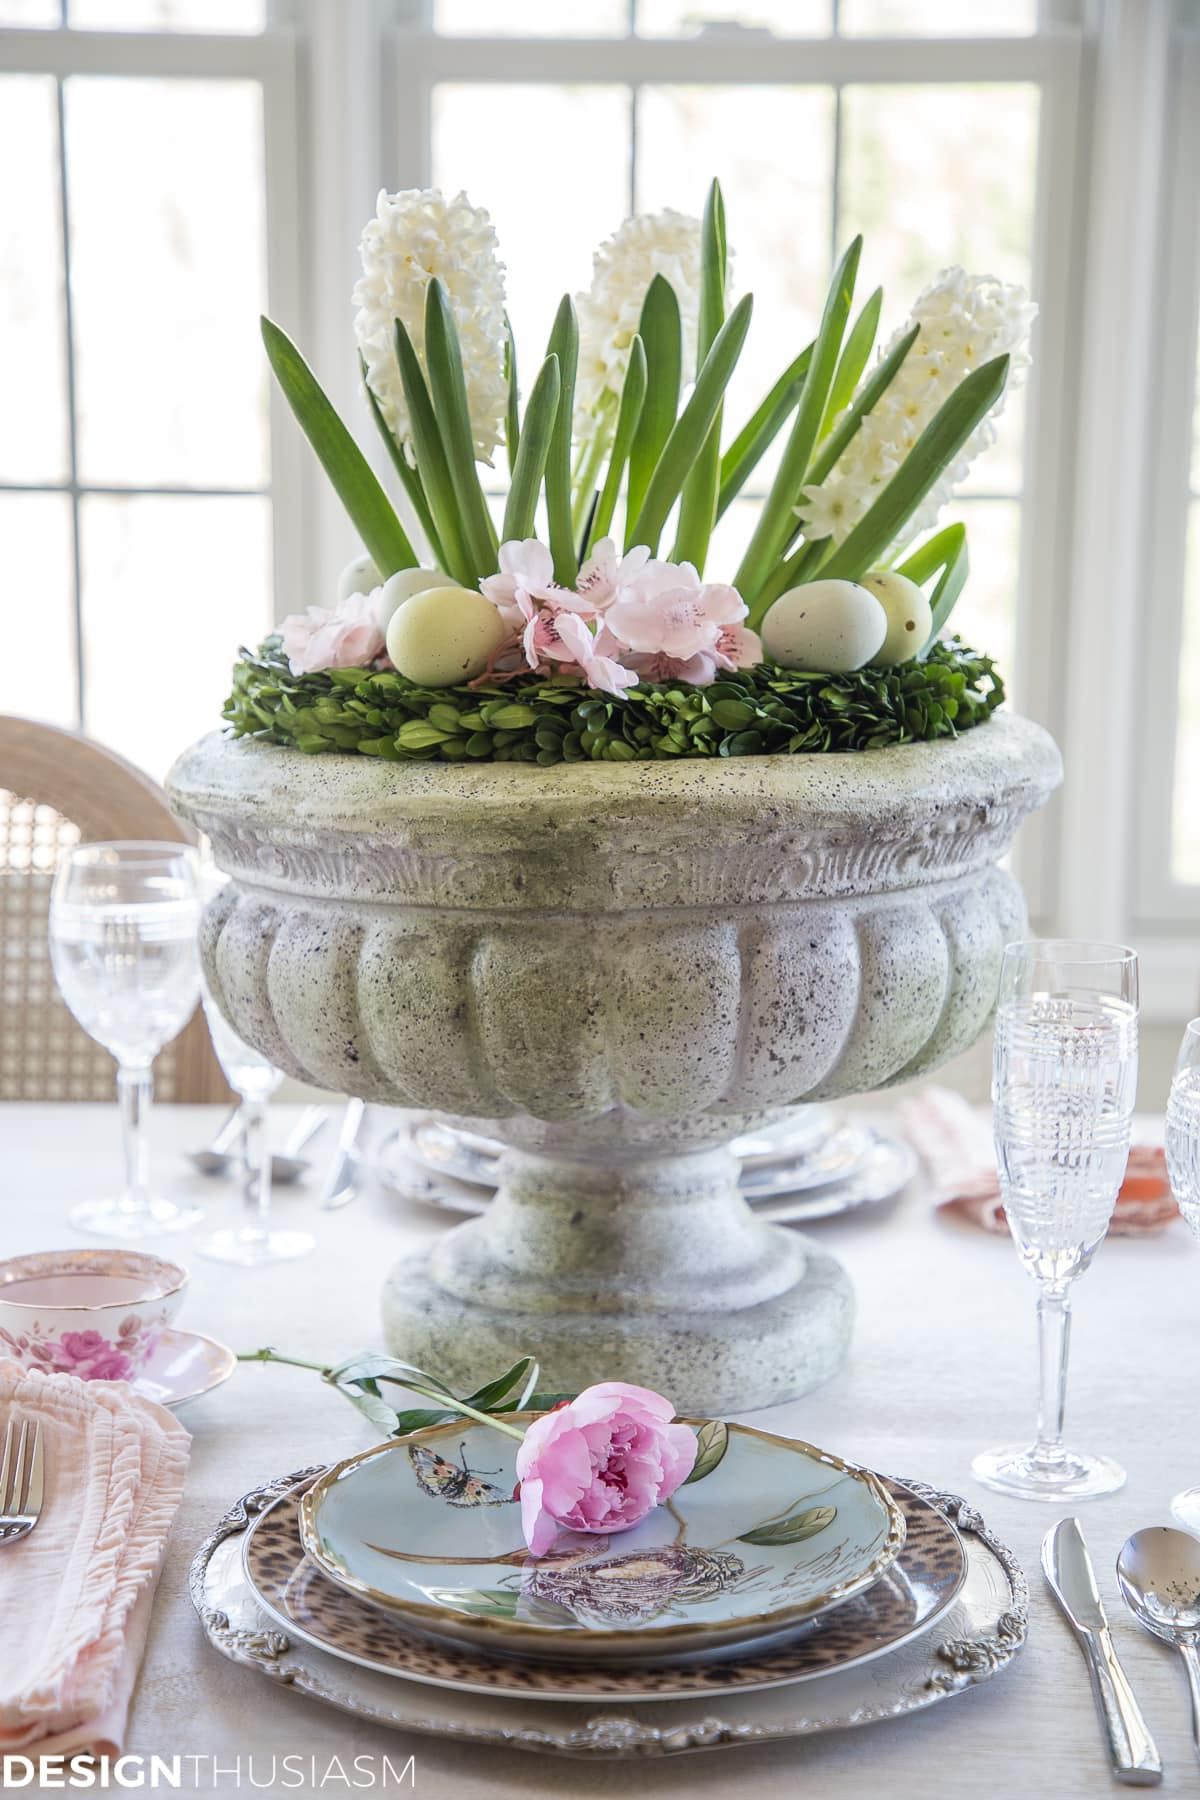 Beautiful spring flower centerpiece in a pedestal planter.